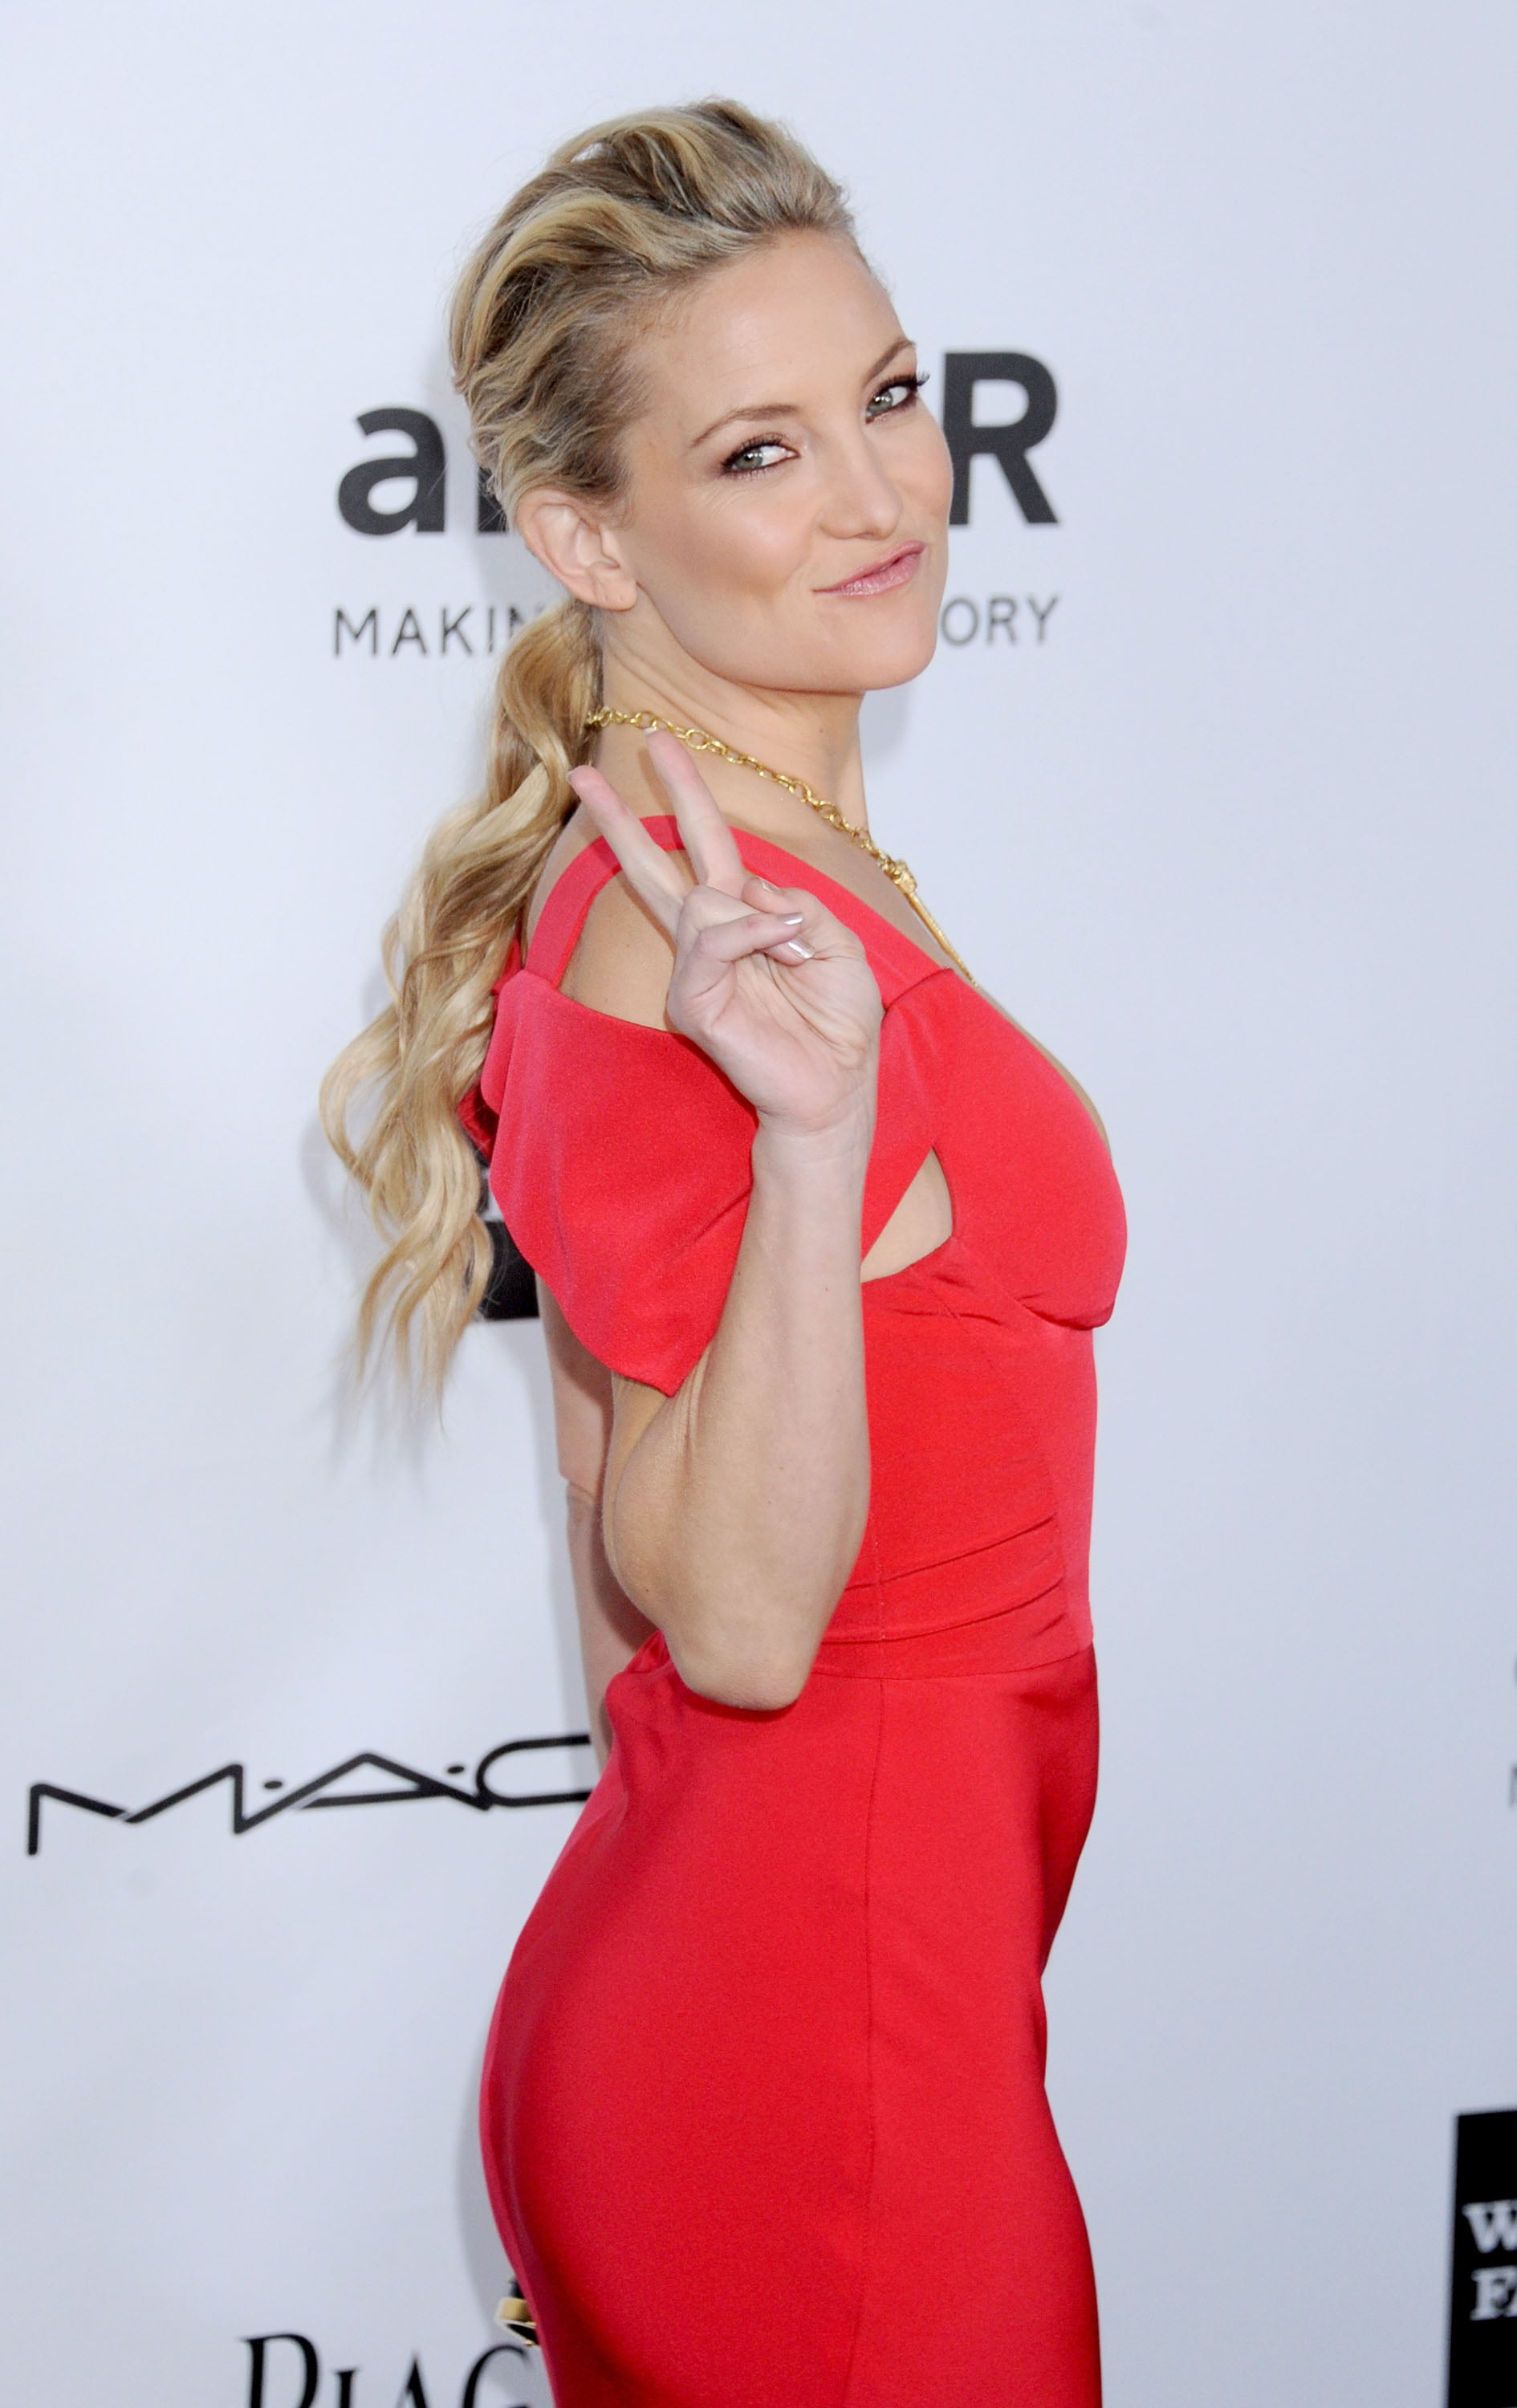 Kate Hudson attended the event held at Milk Studios in LA.